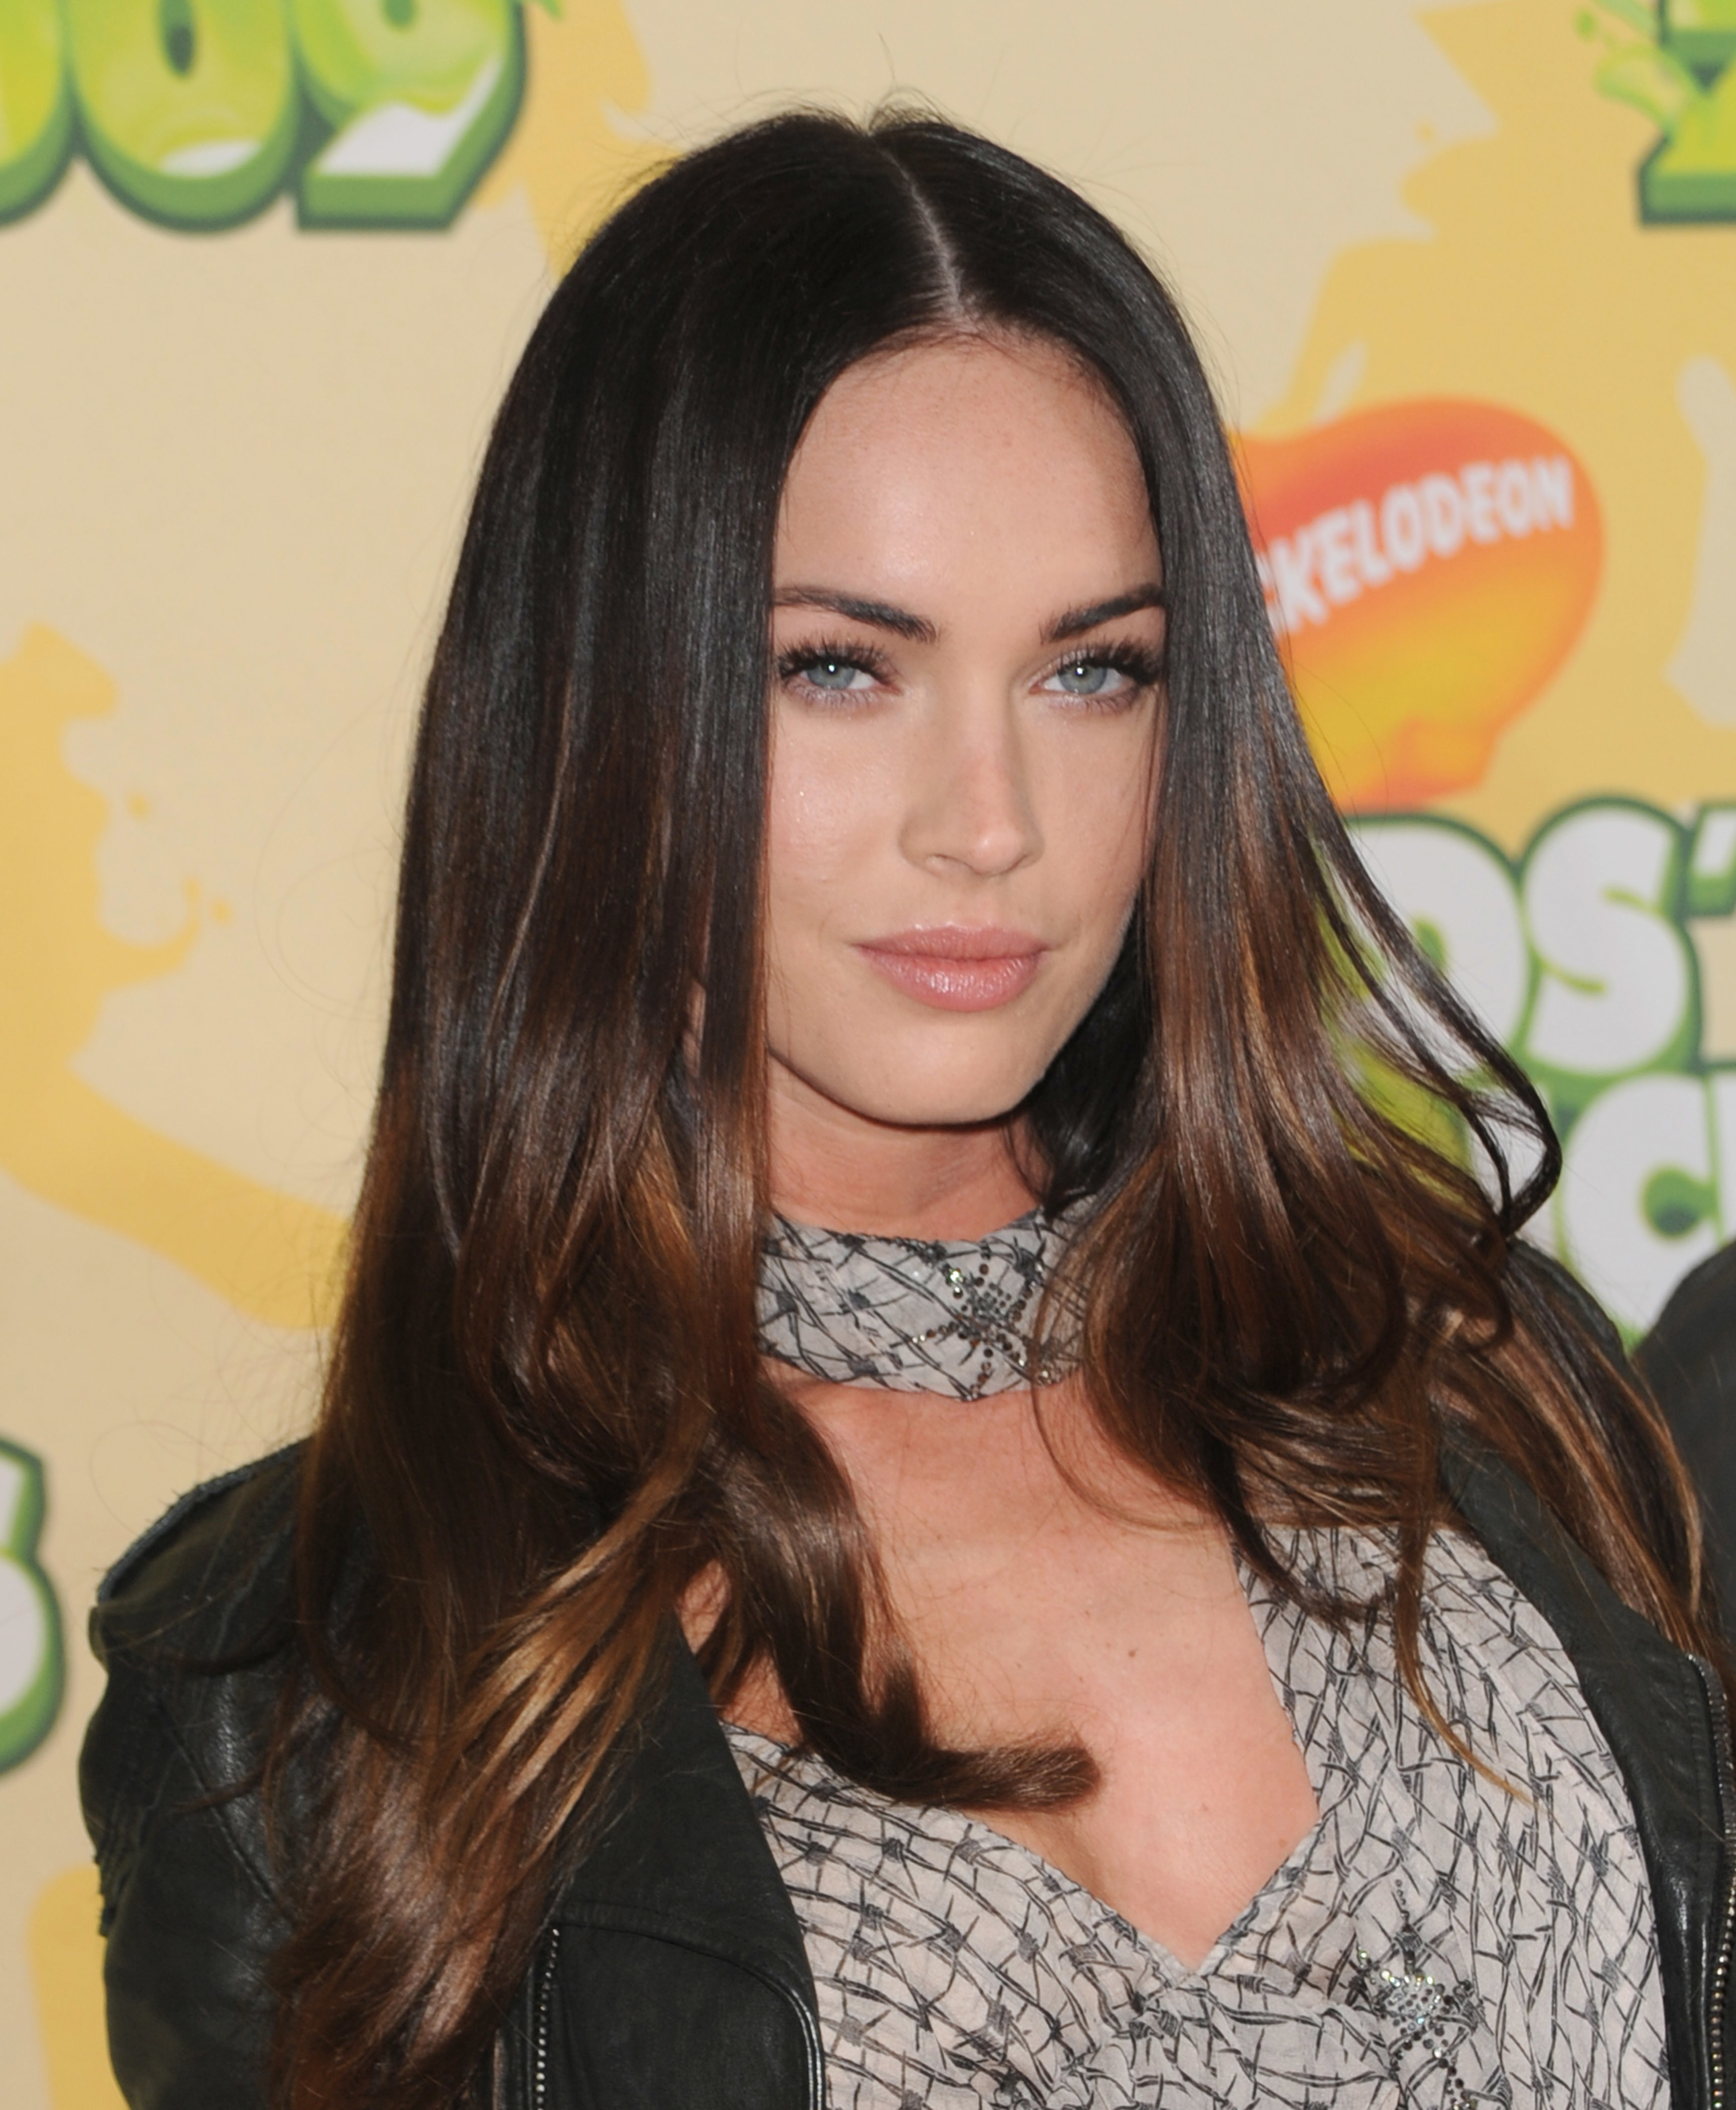 Fox_sd009228420.jpg Megan Fox